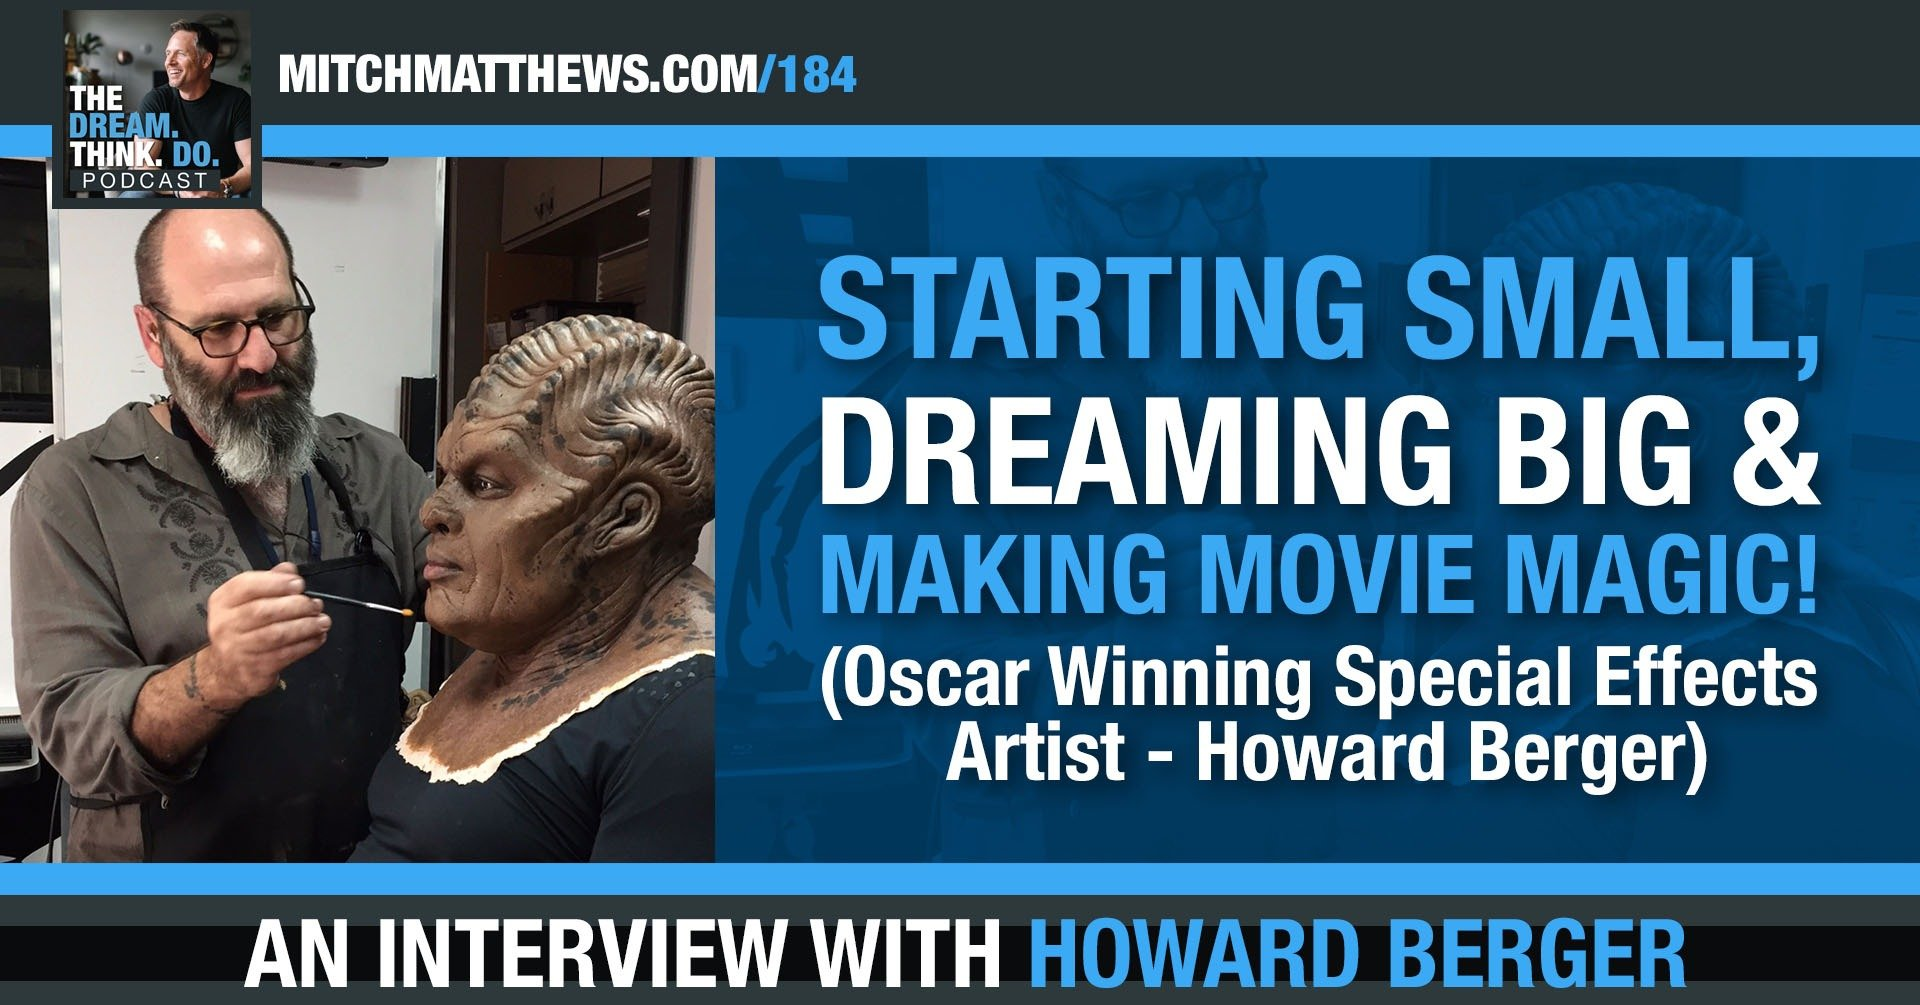 Starting Small, Dreaming BIG & Making Movie Magic! with Howard Berger